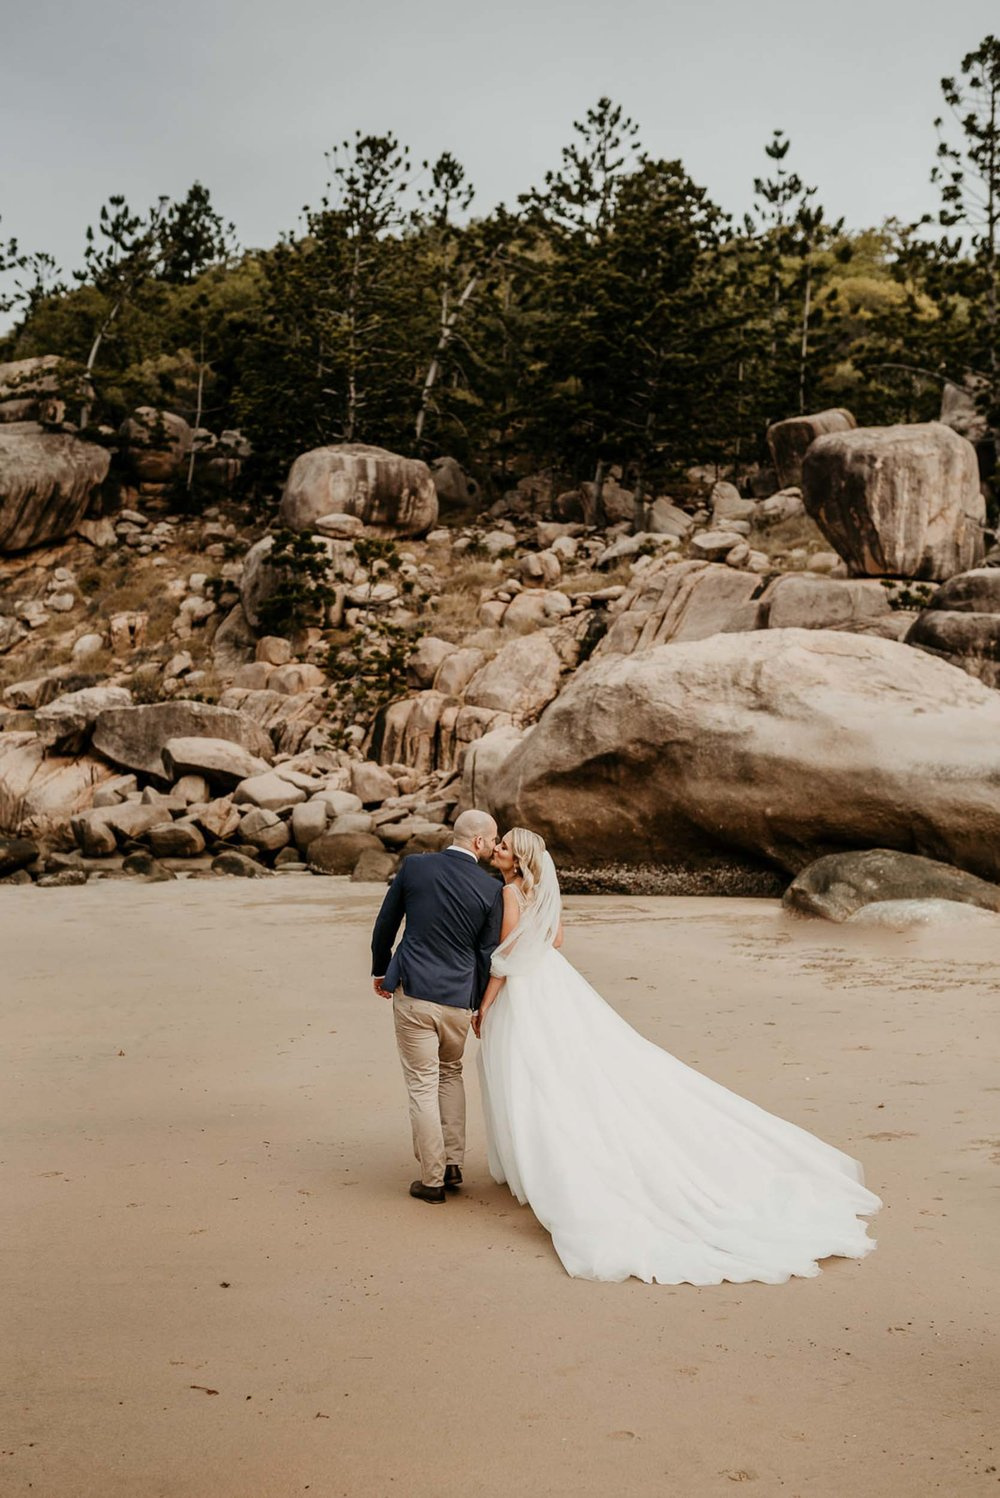 The Raw Photographer - Townsville Wedding Photographer - Magnetic Island - Destination Wedding - Dress White Lily Couture Bridal Nicole Milano-31.jpg